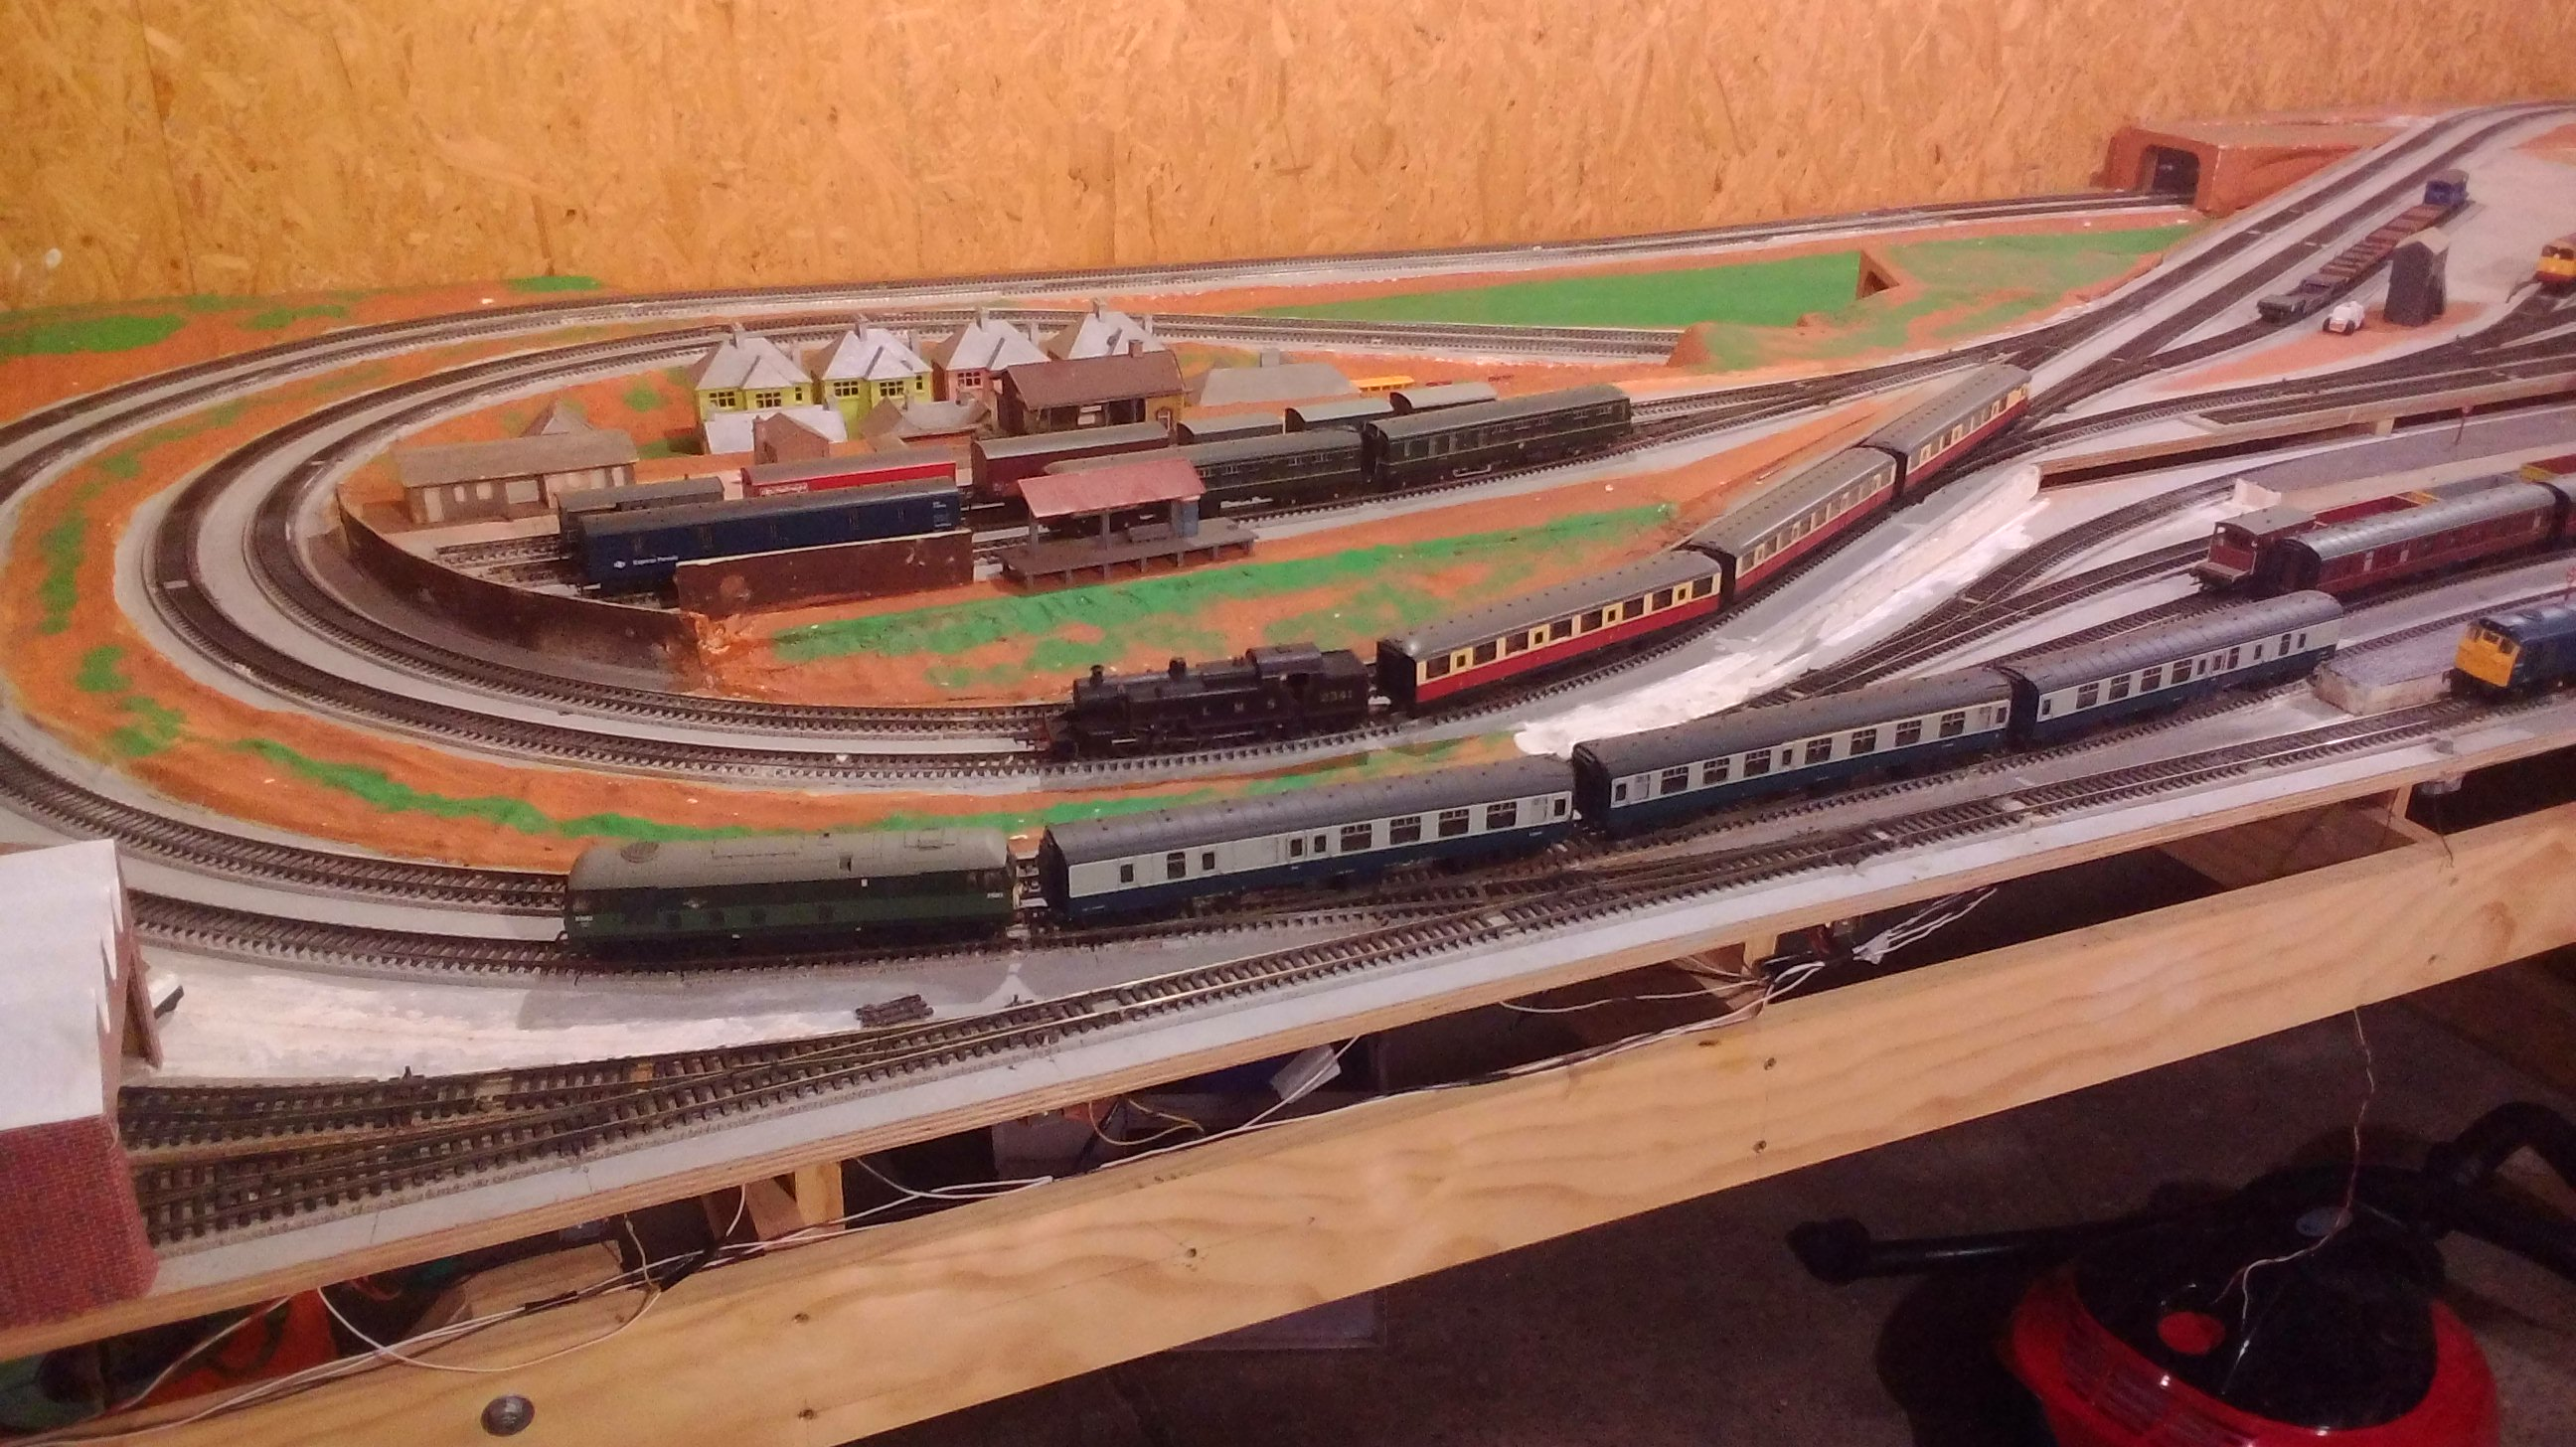 15ft x 6ft layout built in two sections